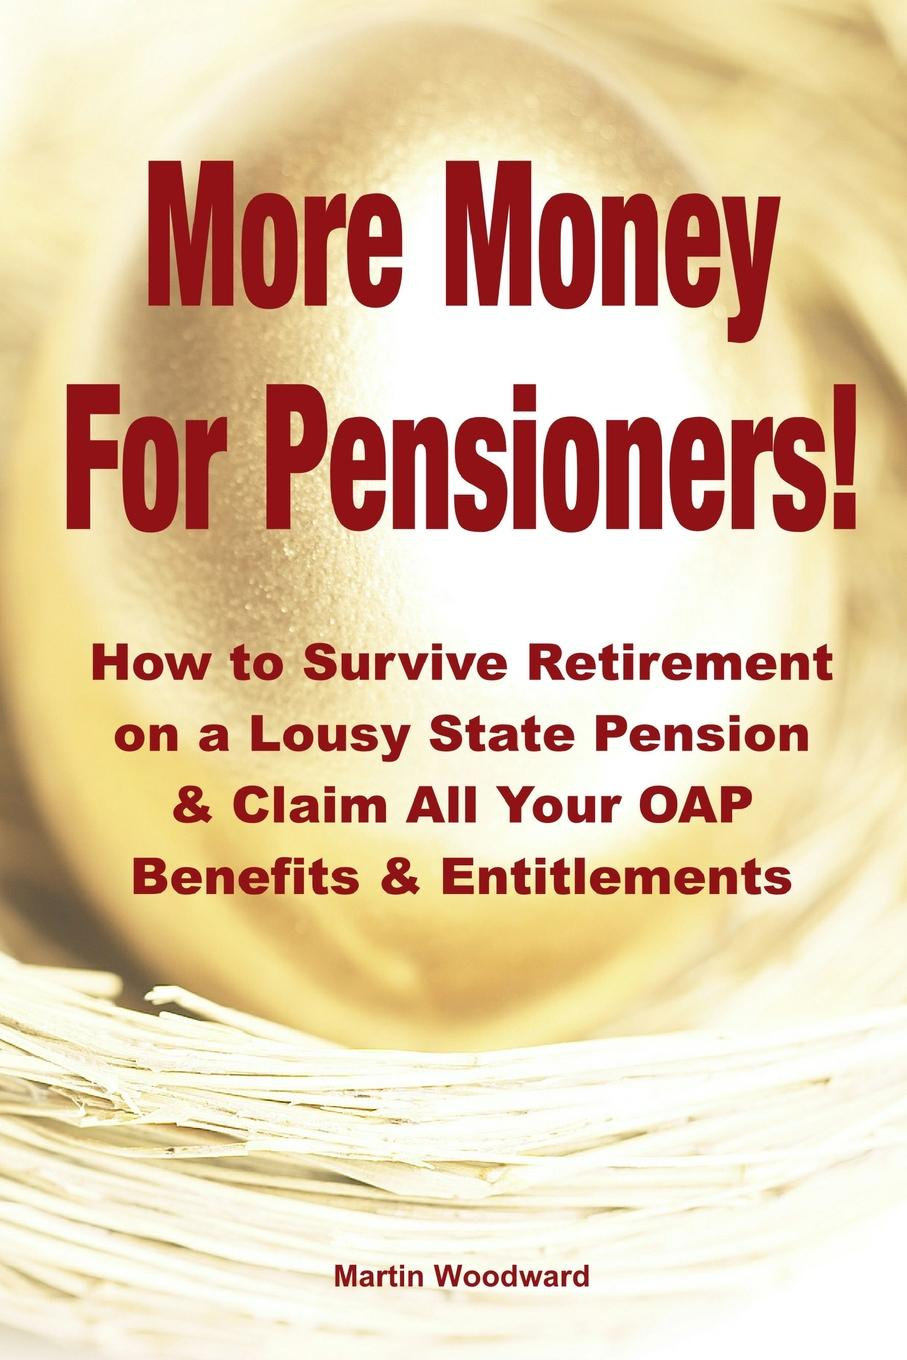 More Money  For Pensioners.. How to Survive Retirement on a Lousy State Pension and Claim All Your OAP Benefits . Entitlements Some of the items included are:Why the poorest in society pay most...